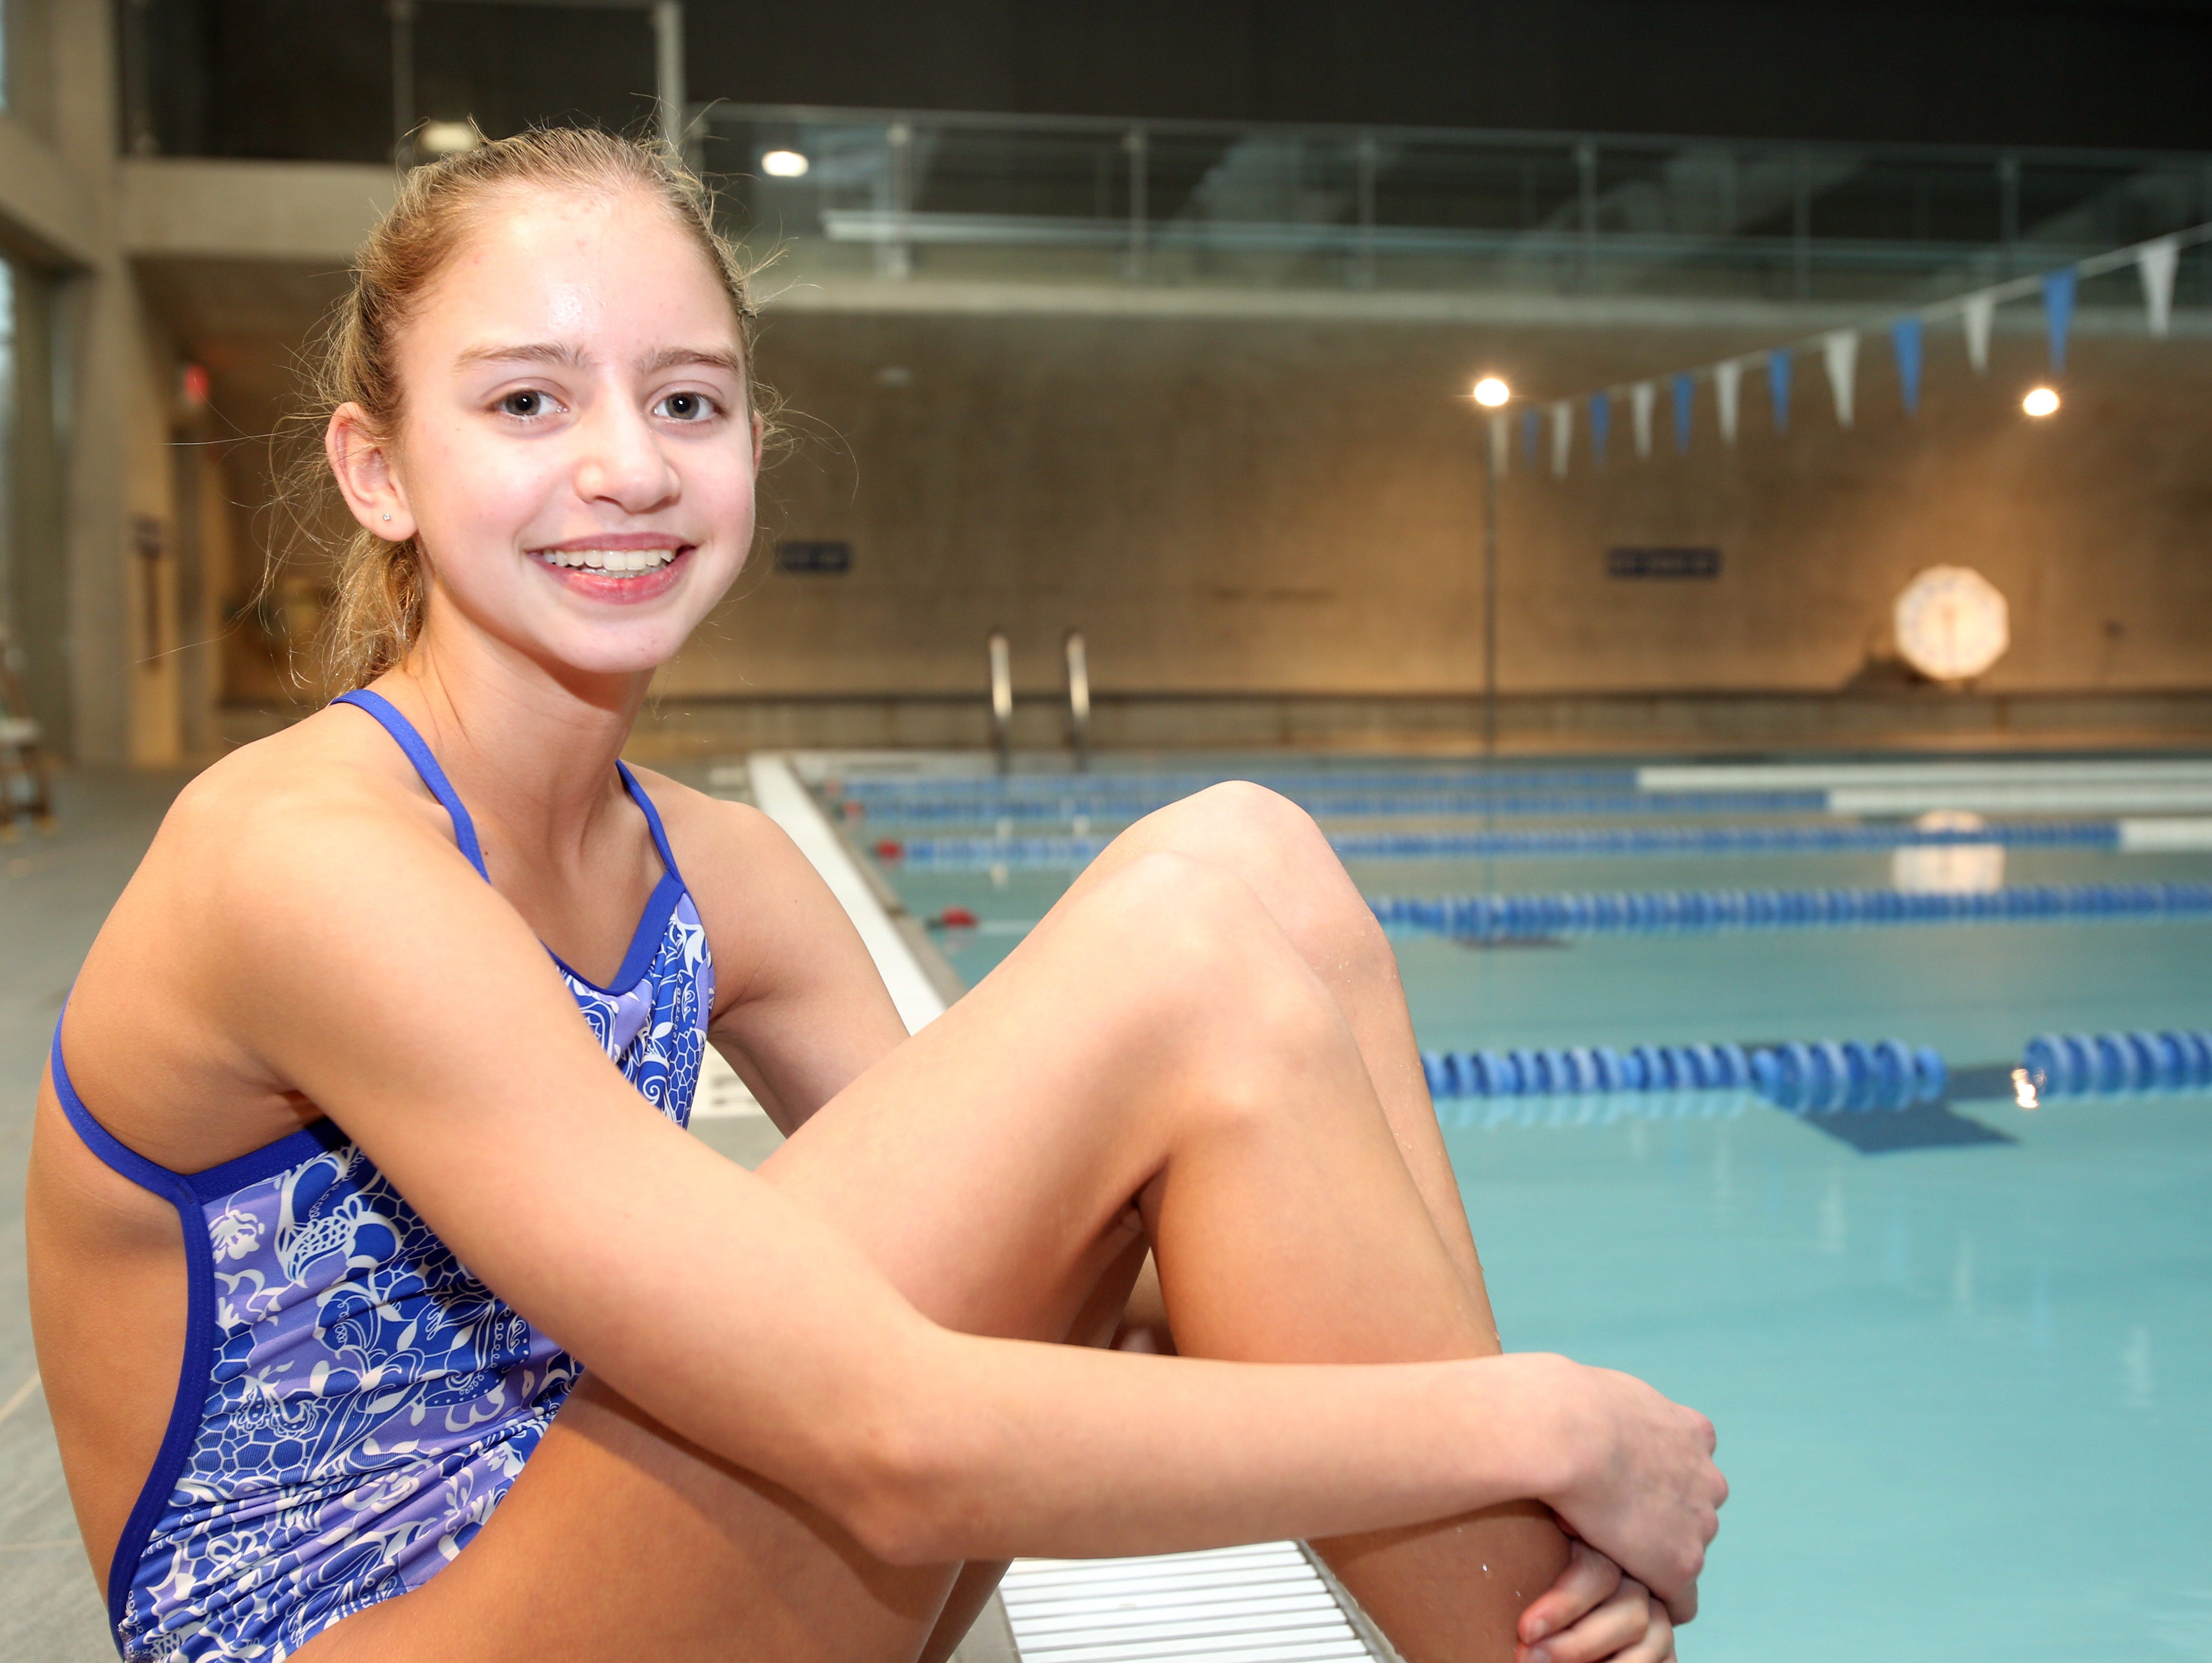 Kate Douglass, a ninth grader at Pelham High School, poses for a photograph before practice at the College of New Rochelle wellness center pool on Dec. 2, 2014. She is The Journal News/lohud Westchester/Putnam Swimmer of the Year for the second consecutive season.